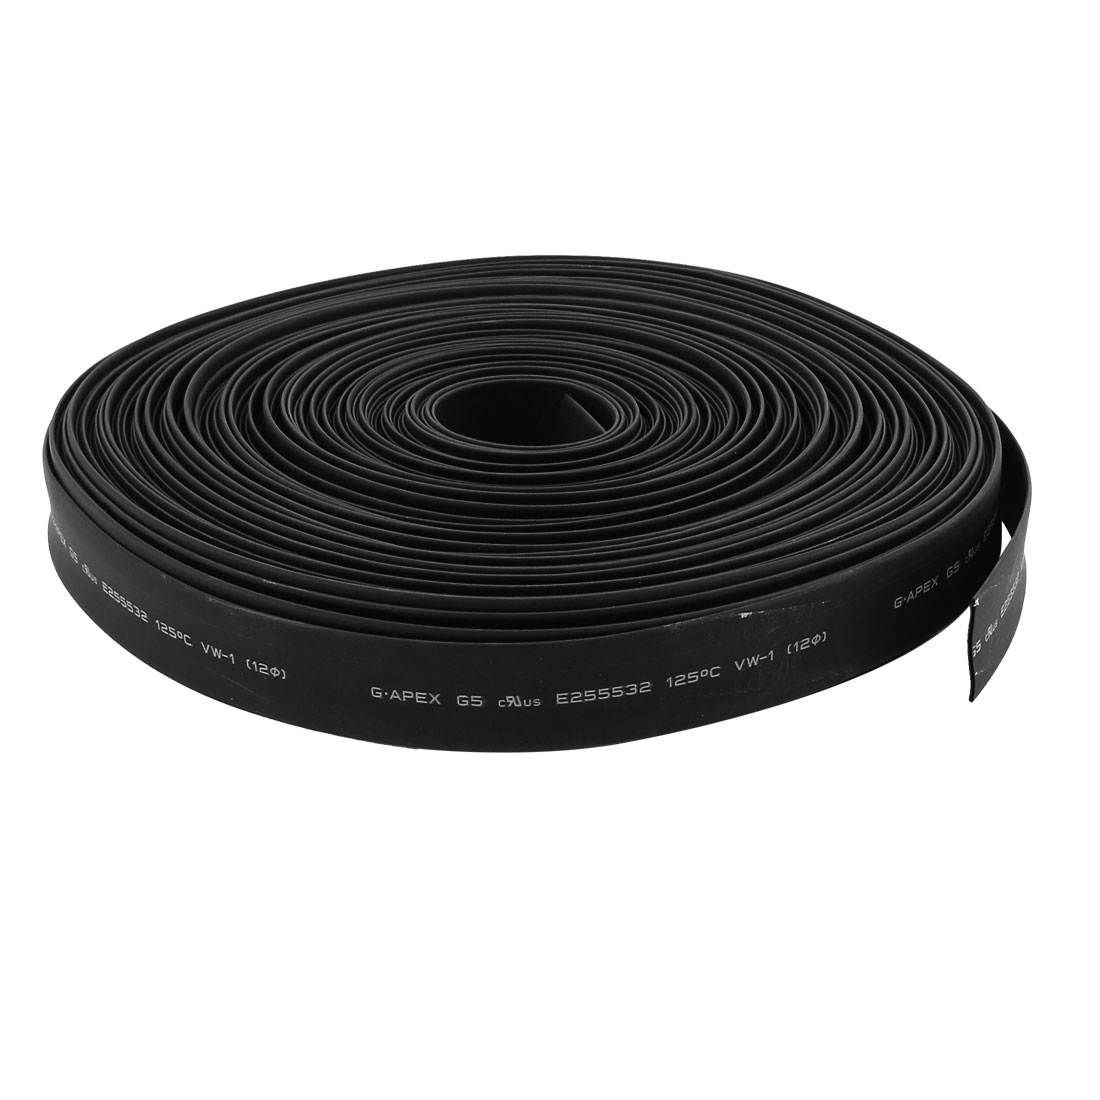 30m 12mm Dia Insulated PE Heat Shrink Tube 2:1 Shrinkage Ratio Waterproof Black